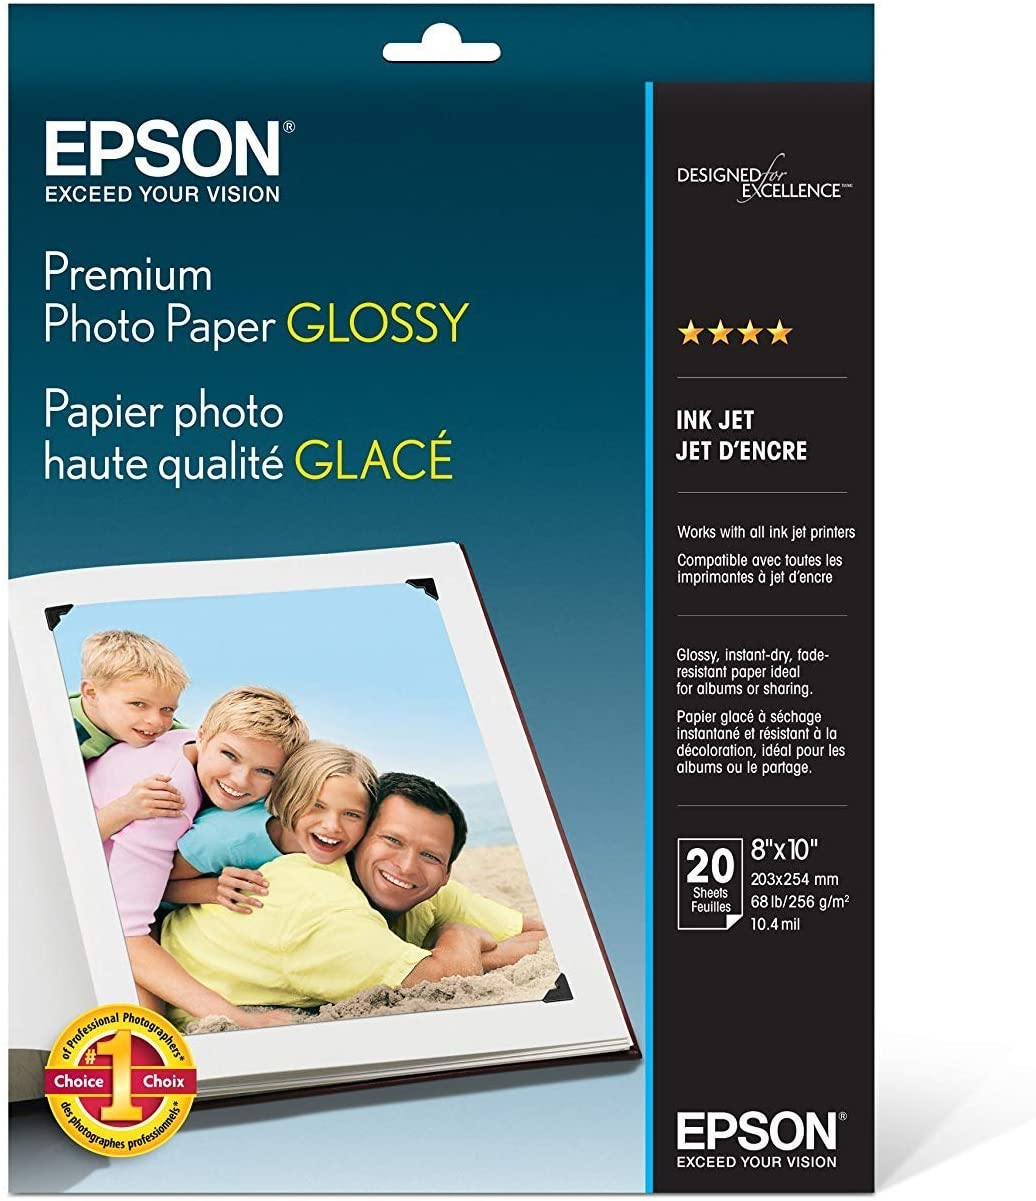 Epson Premium Photo Paper GLOSSY (8x10 Inches, 20 Sheets) (S041465),White